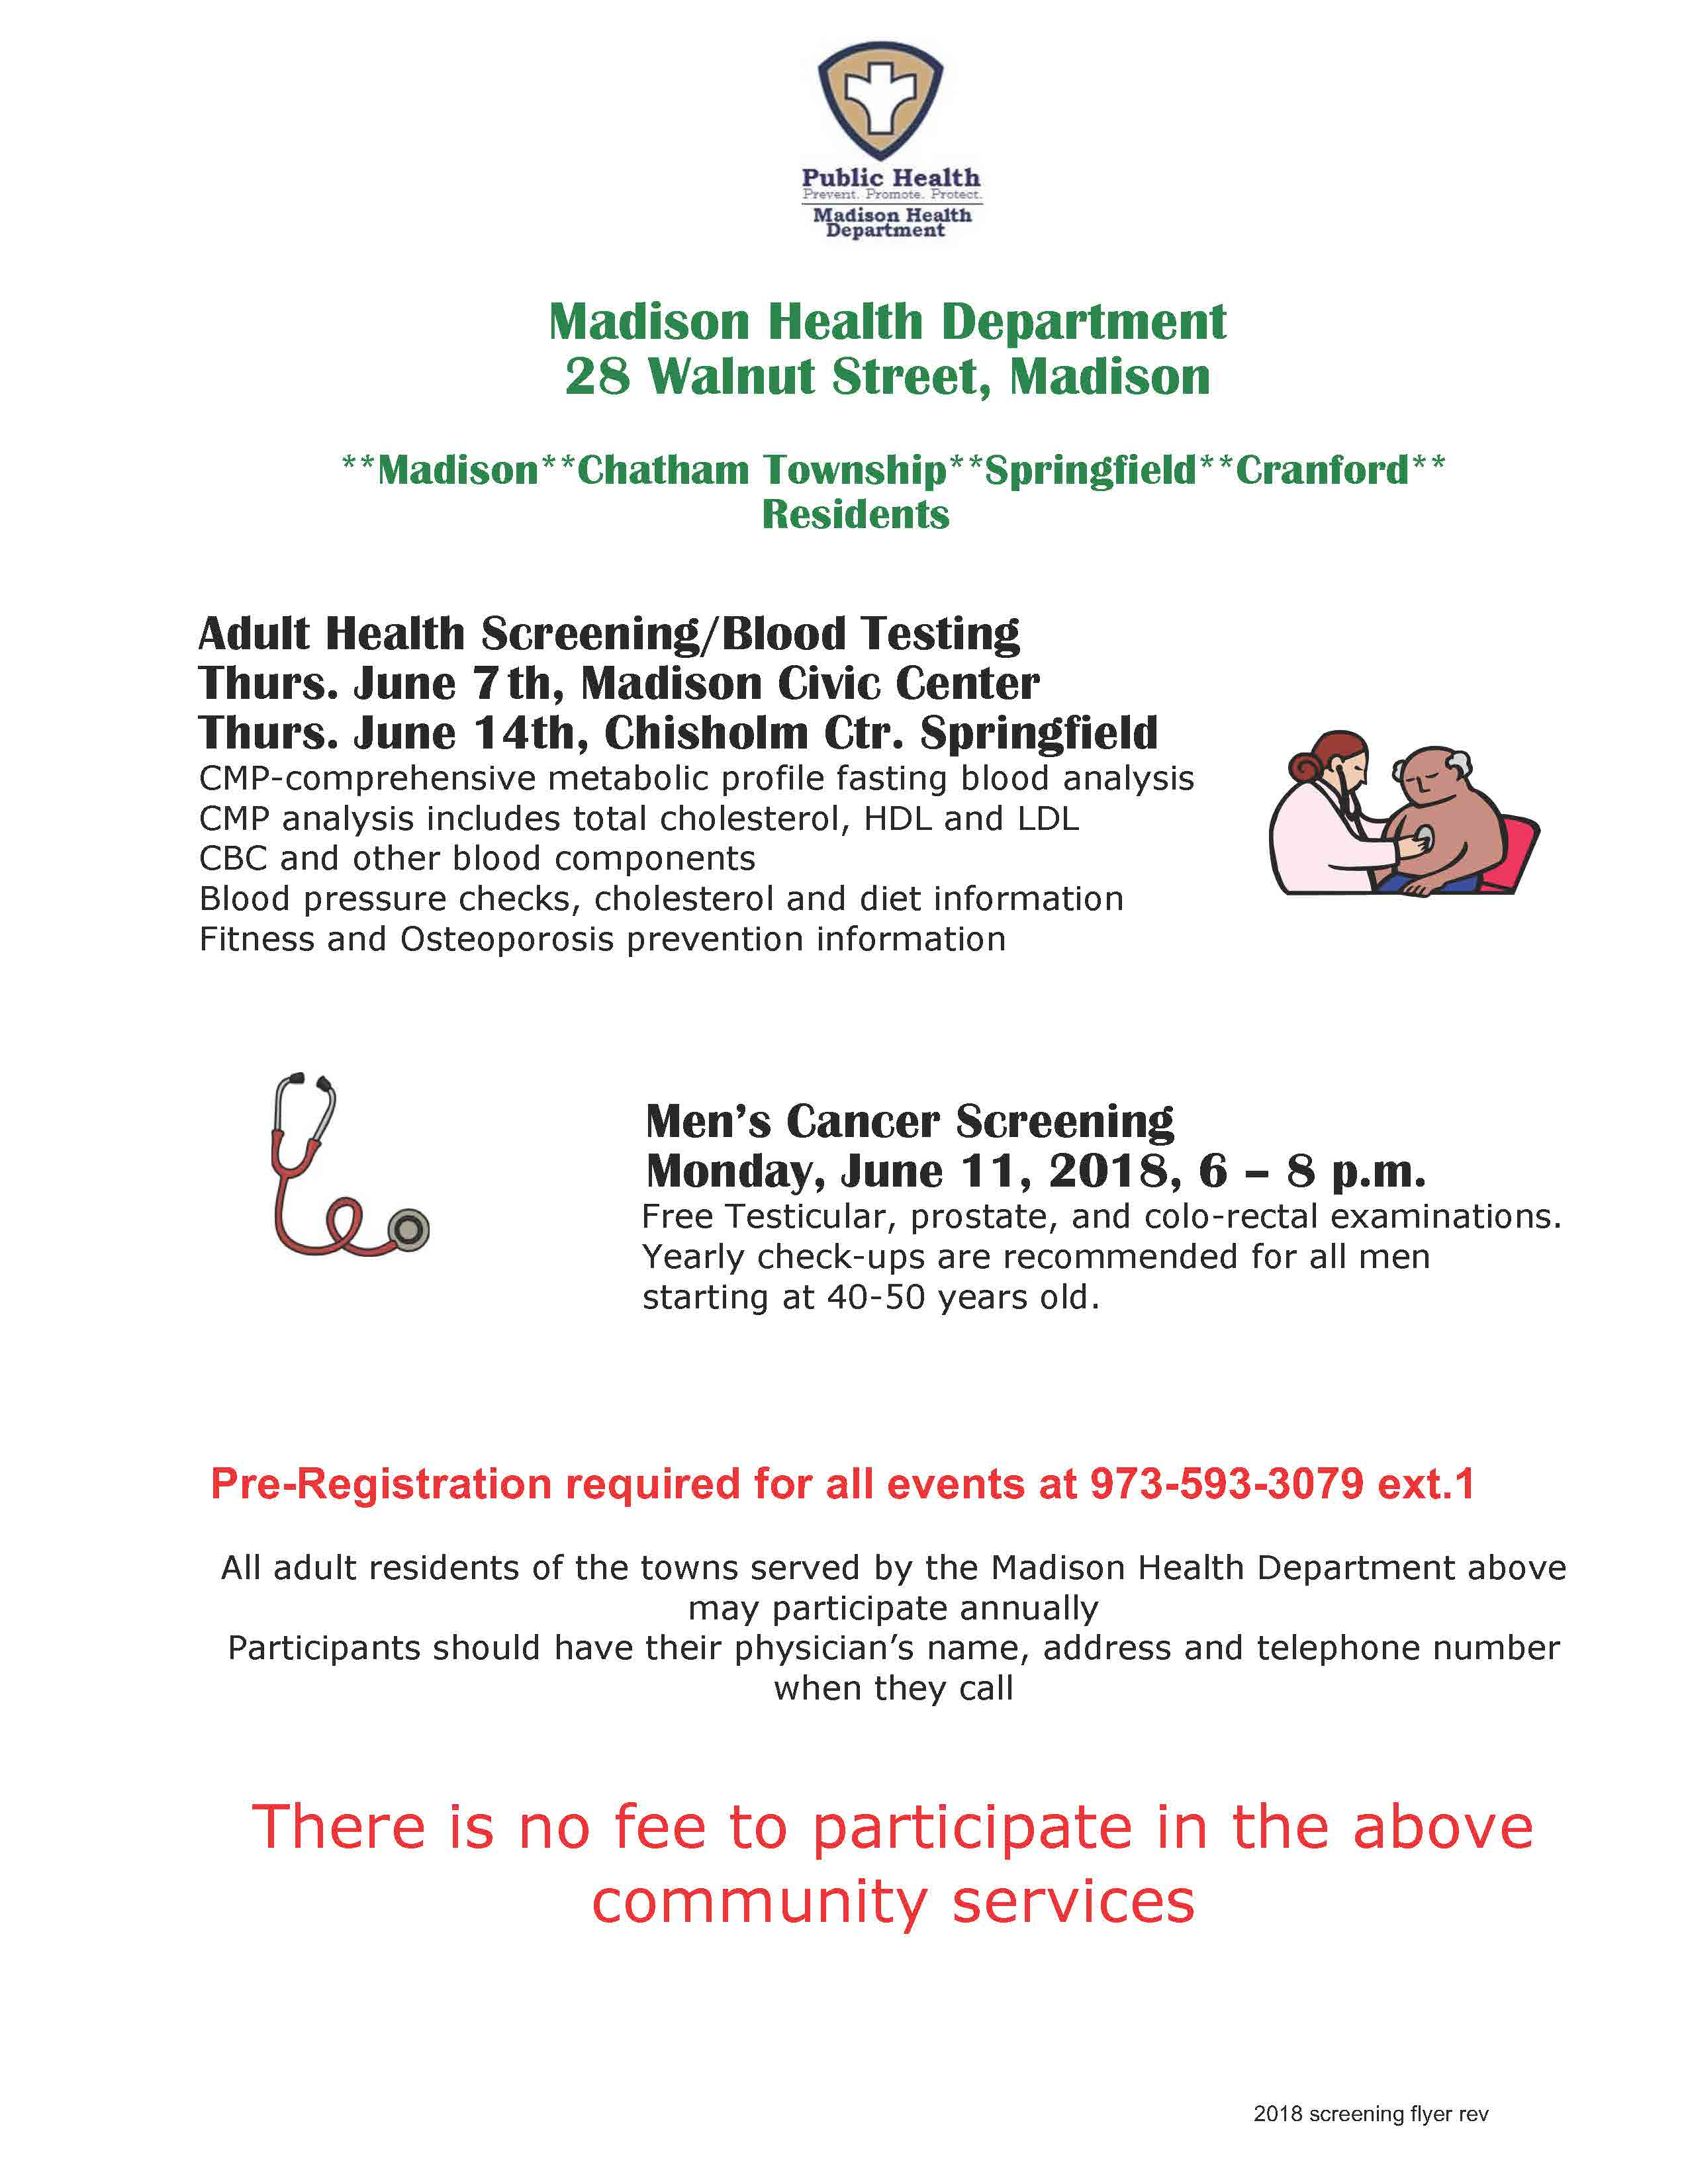 Free Adult Health Screening & Blood Testing by the Madison Health Department 973-593-3079